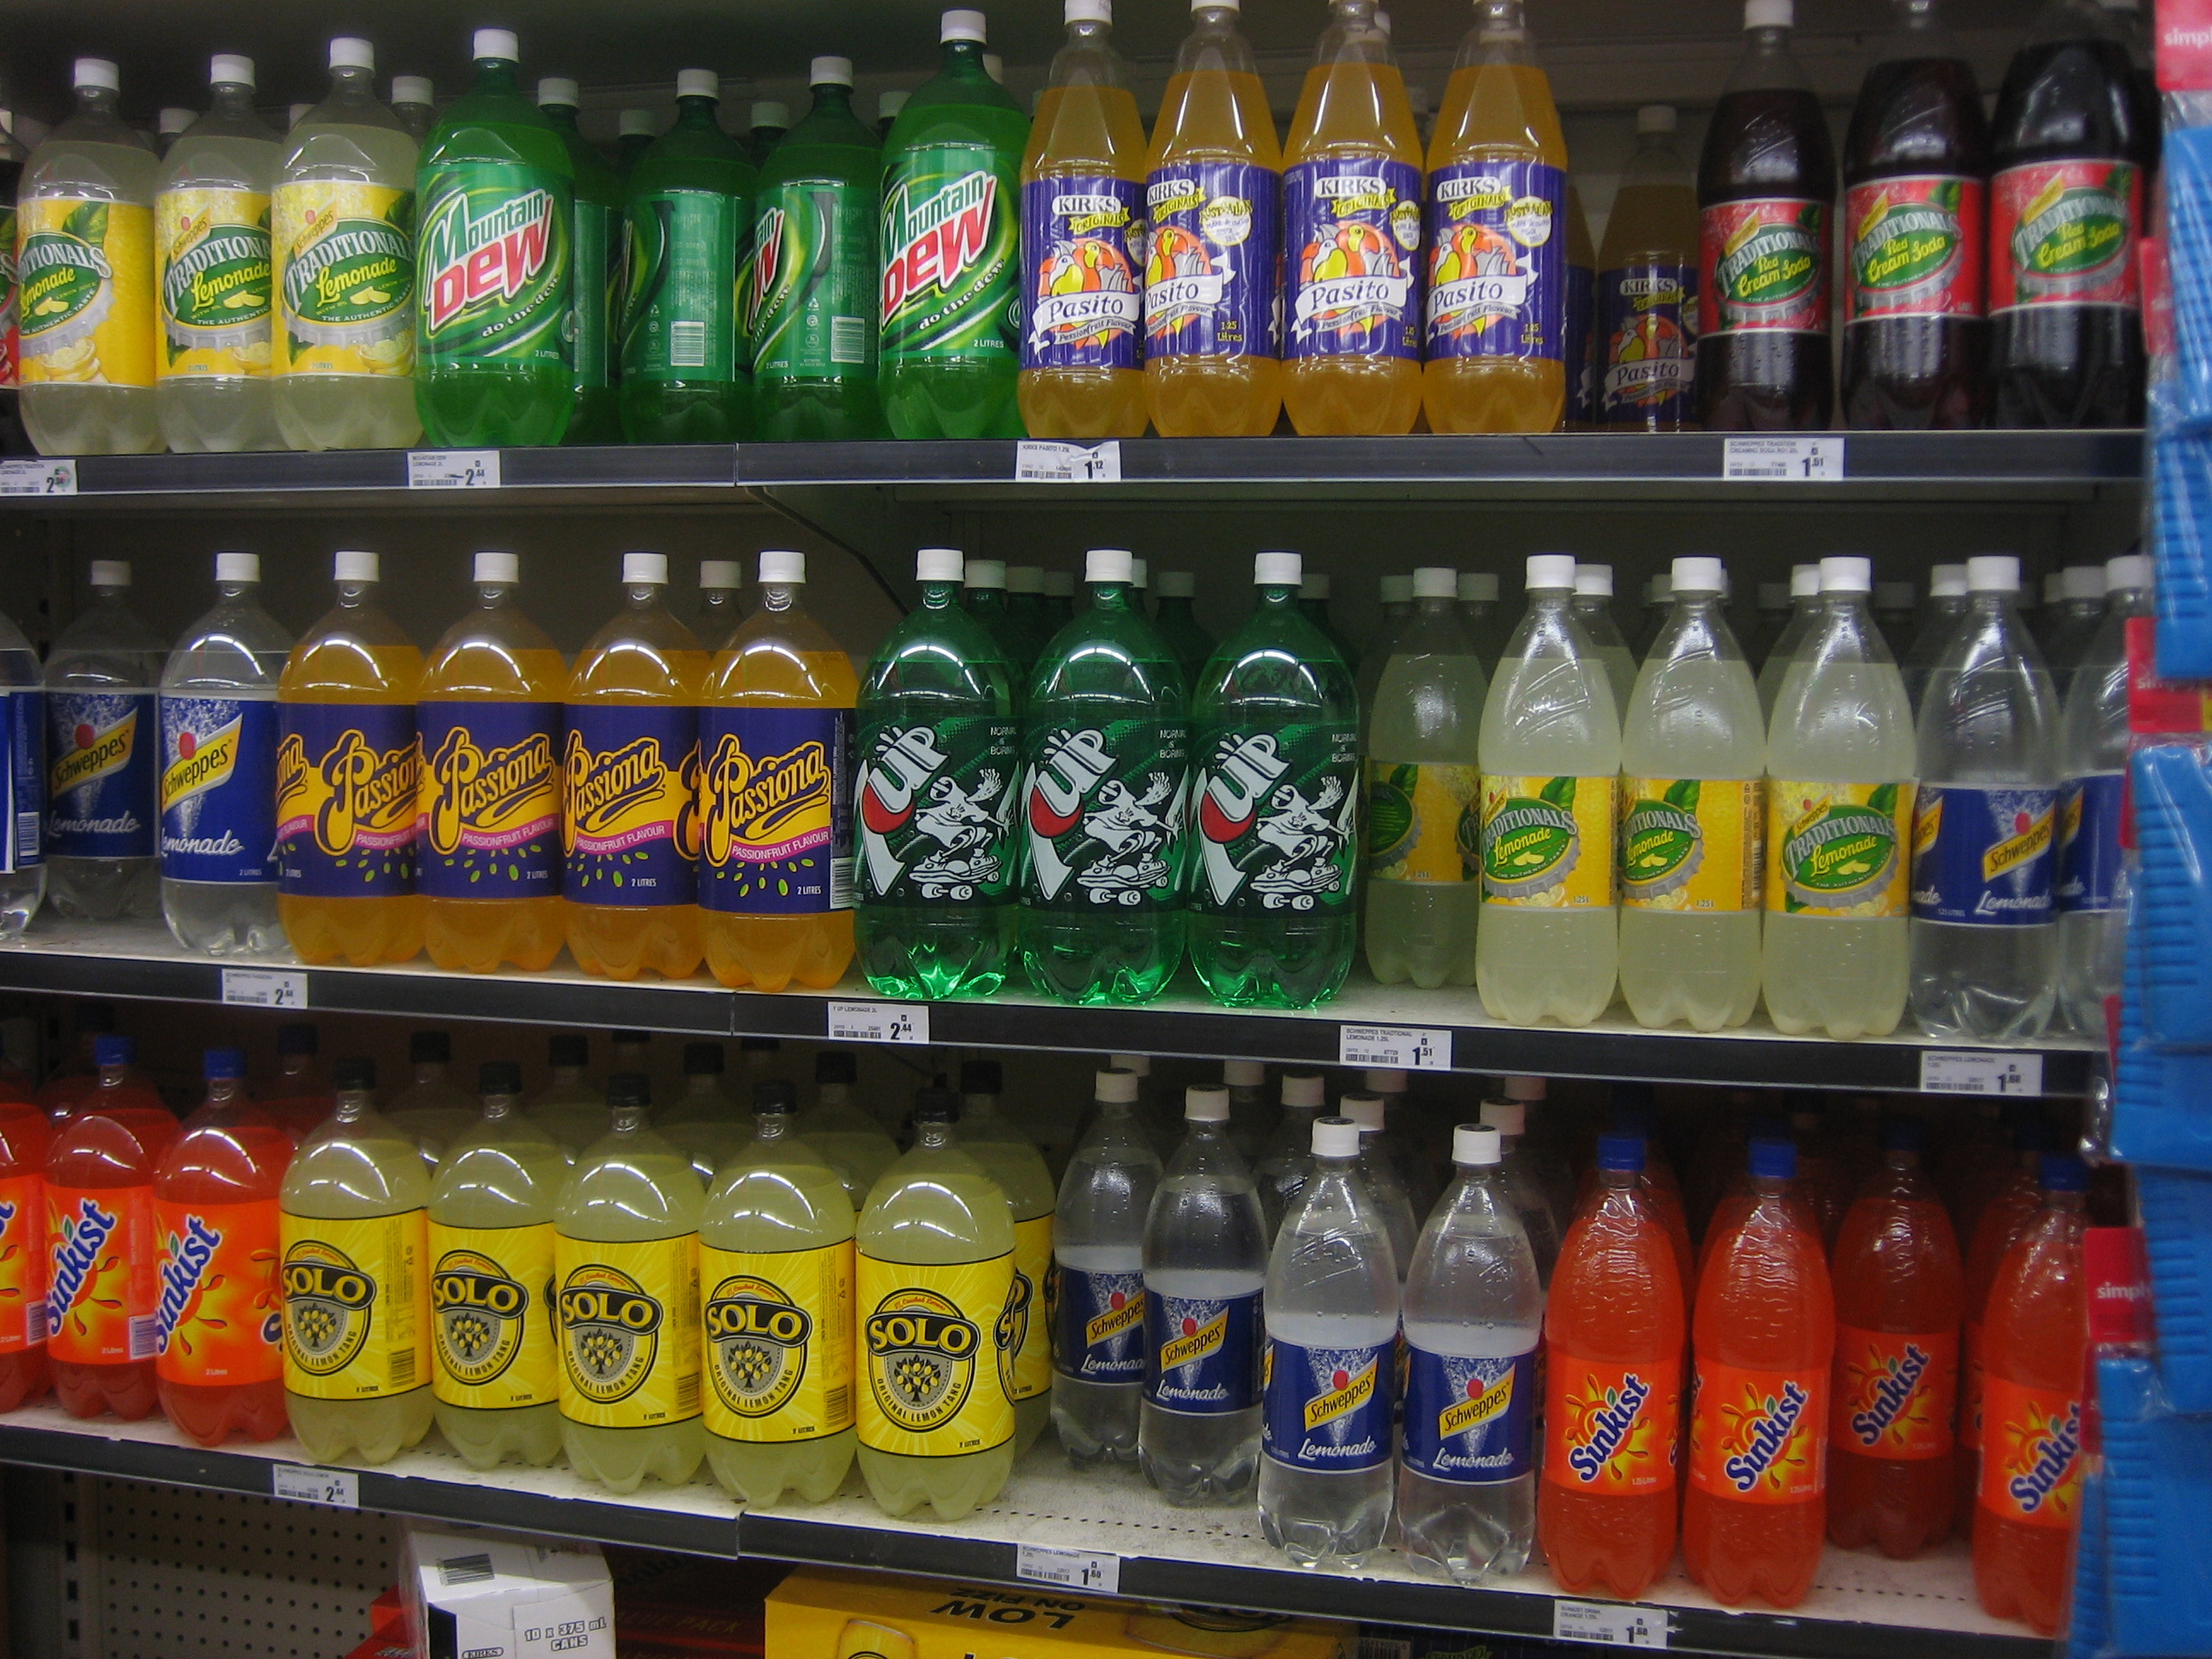 Soft_drink_shelf By SMC at English Wikipedia